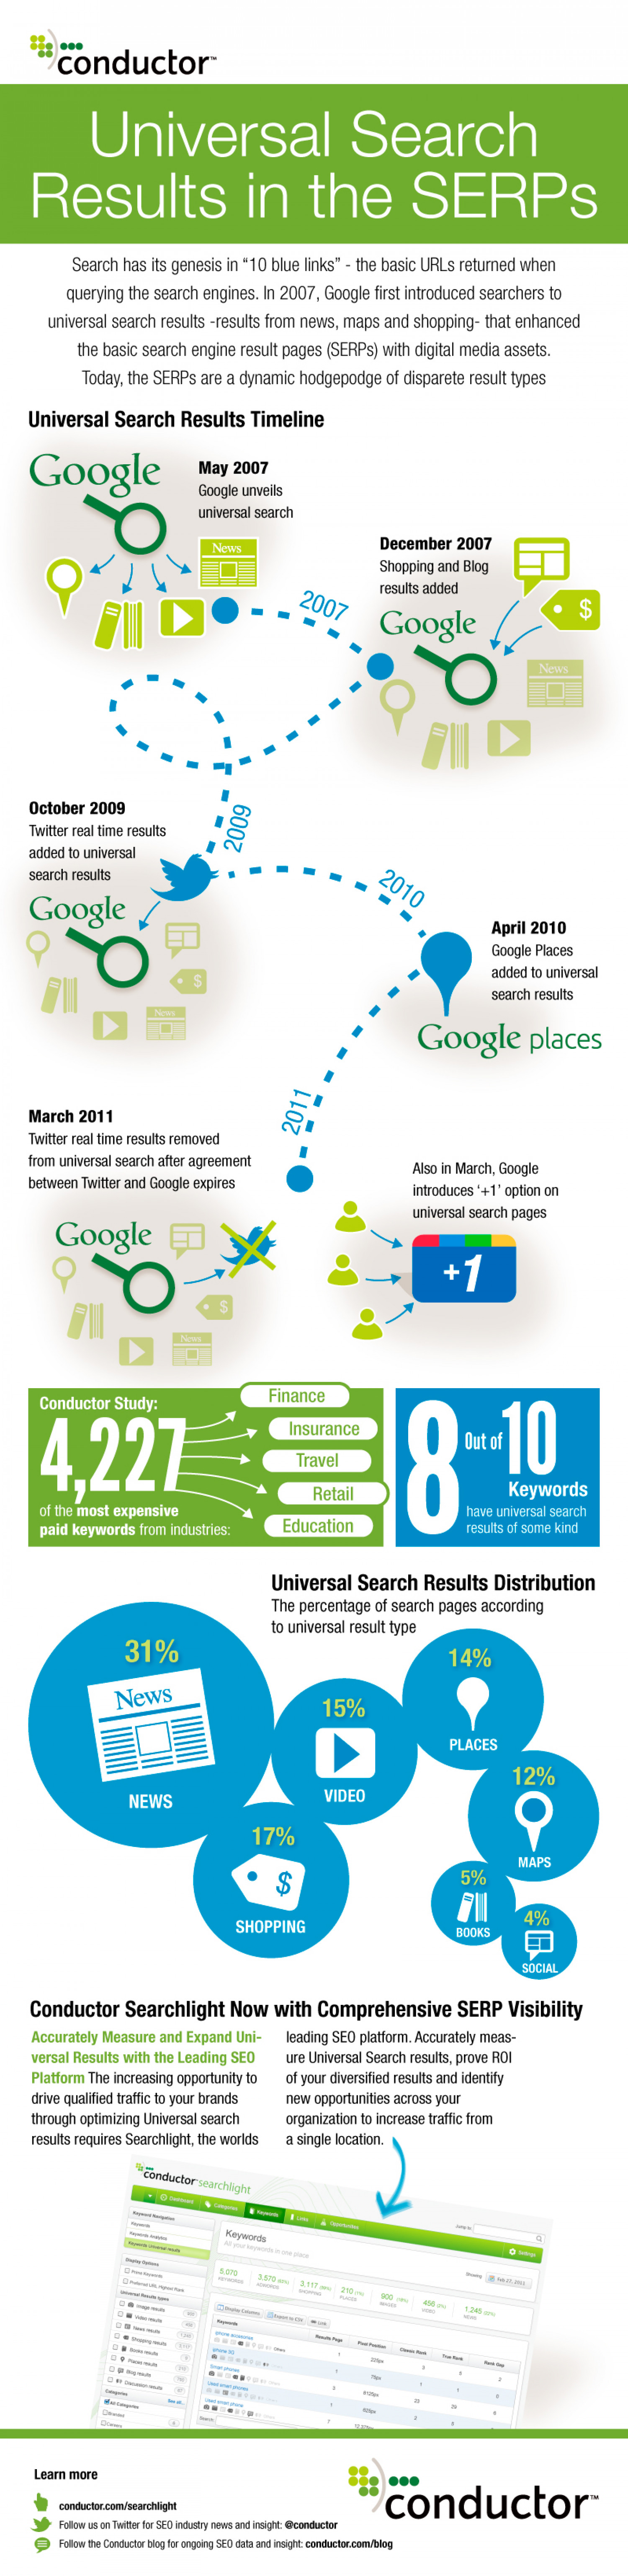 Universal Search Results in the SERPs Infographic